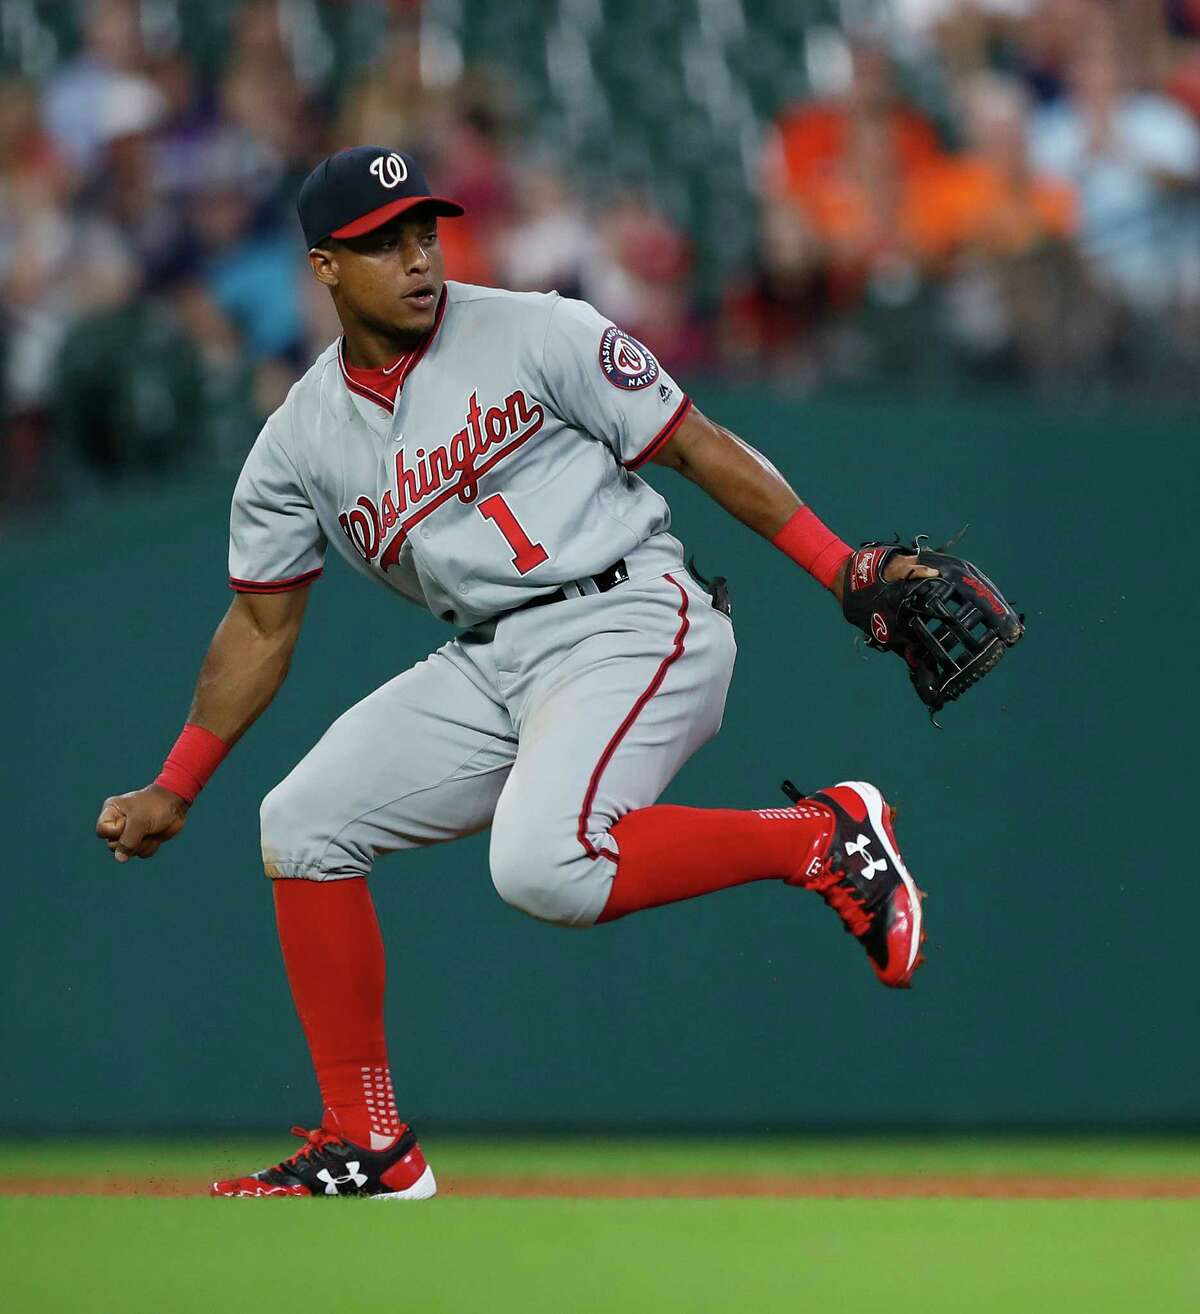 Washington Nationals shortstop Wilmer Difo (1) chases Houston Astros Josh Reddick's RBI single in the third inning of an MLB game at Minute Maid Park, Tuesday, Aug. 22, 2017, in Houston.